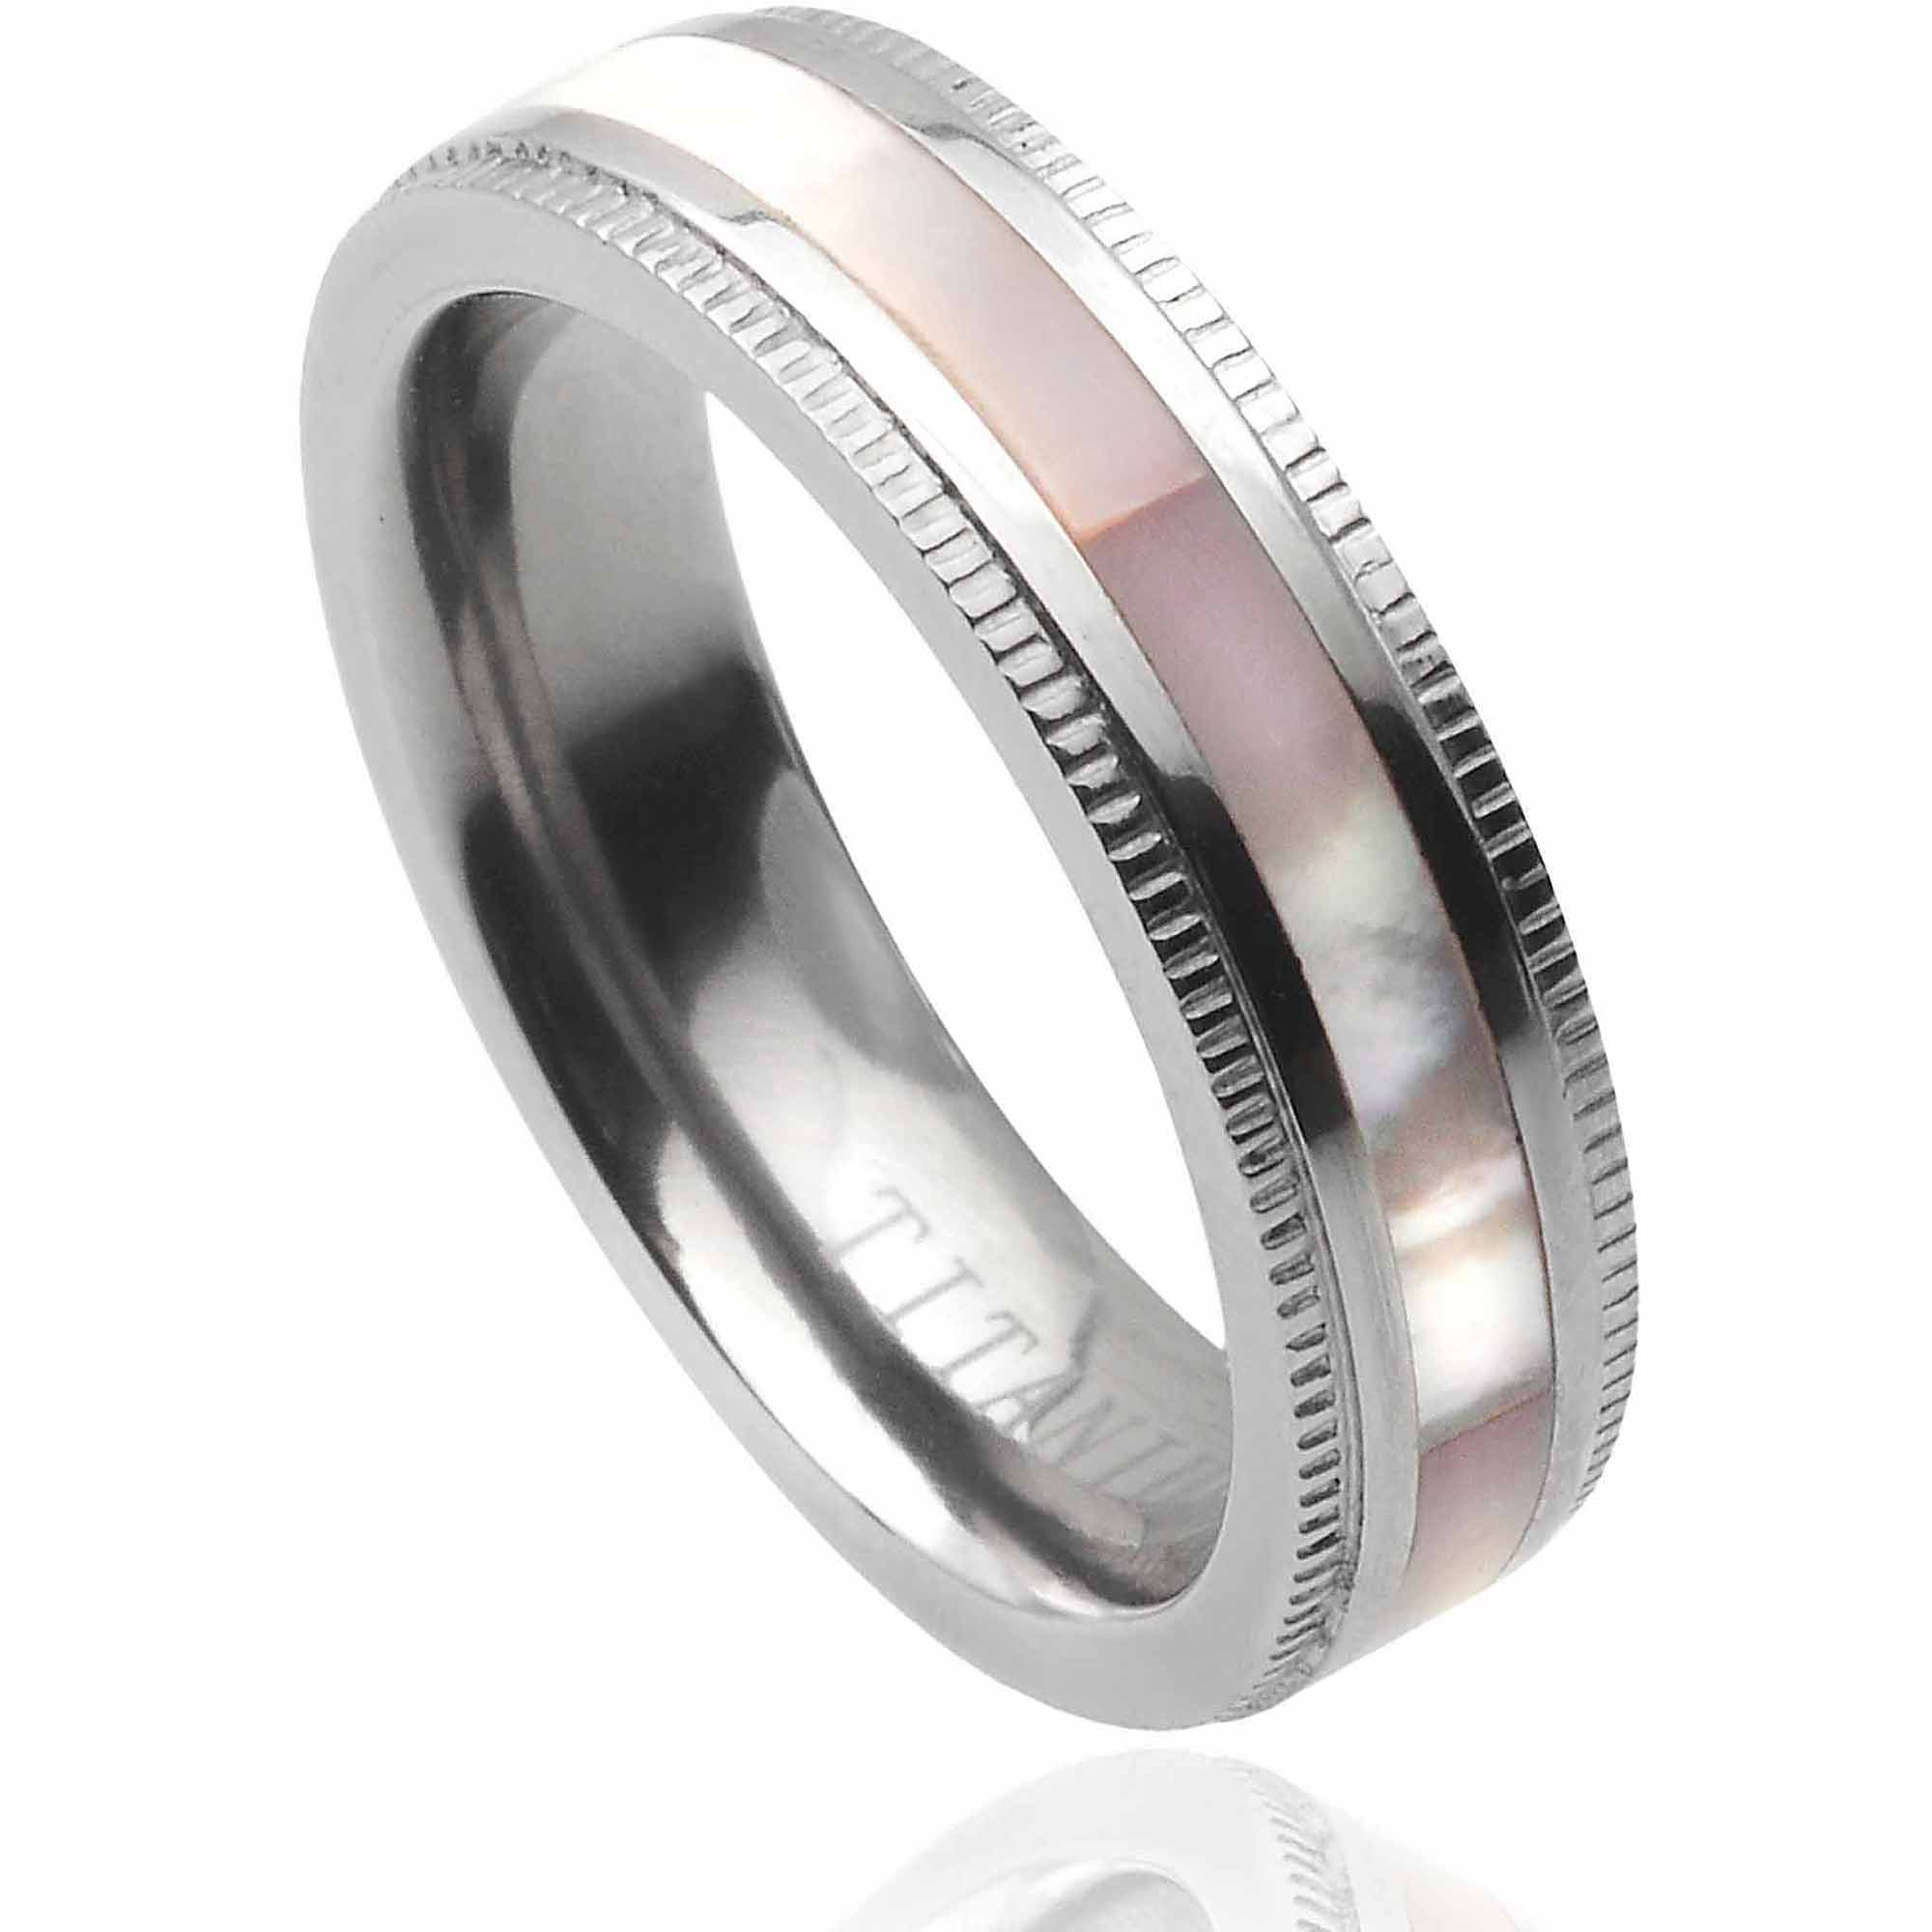 Brinley Co. Women's Abalone Inlay Titanium Fashion Ring, 5mm